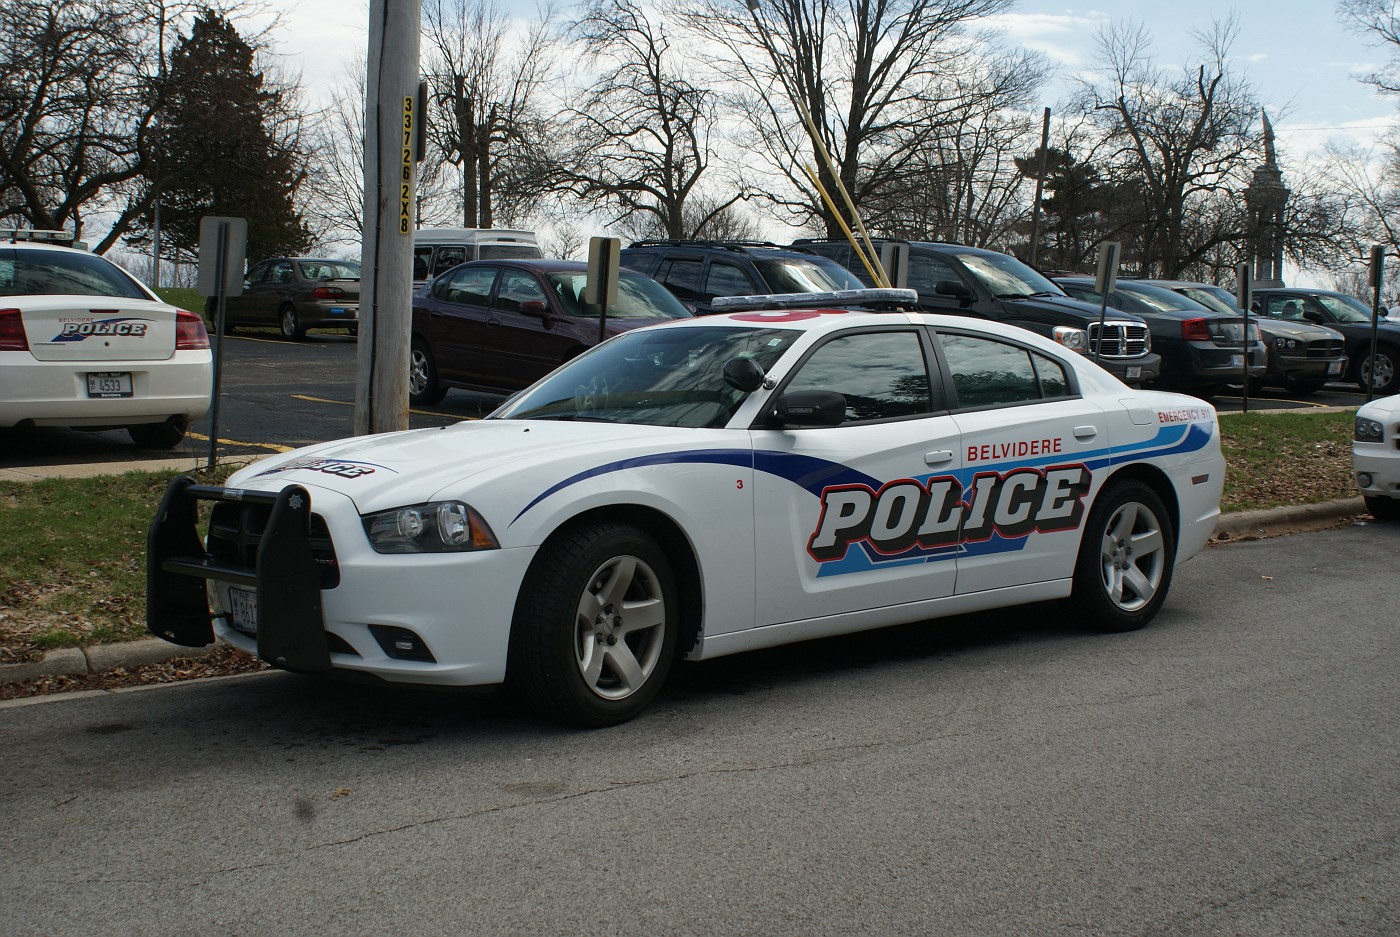 copcar dot com - The home of the American Police Car ...